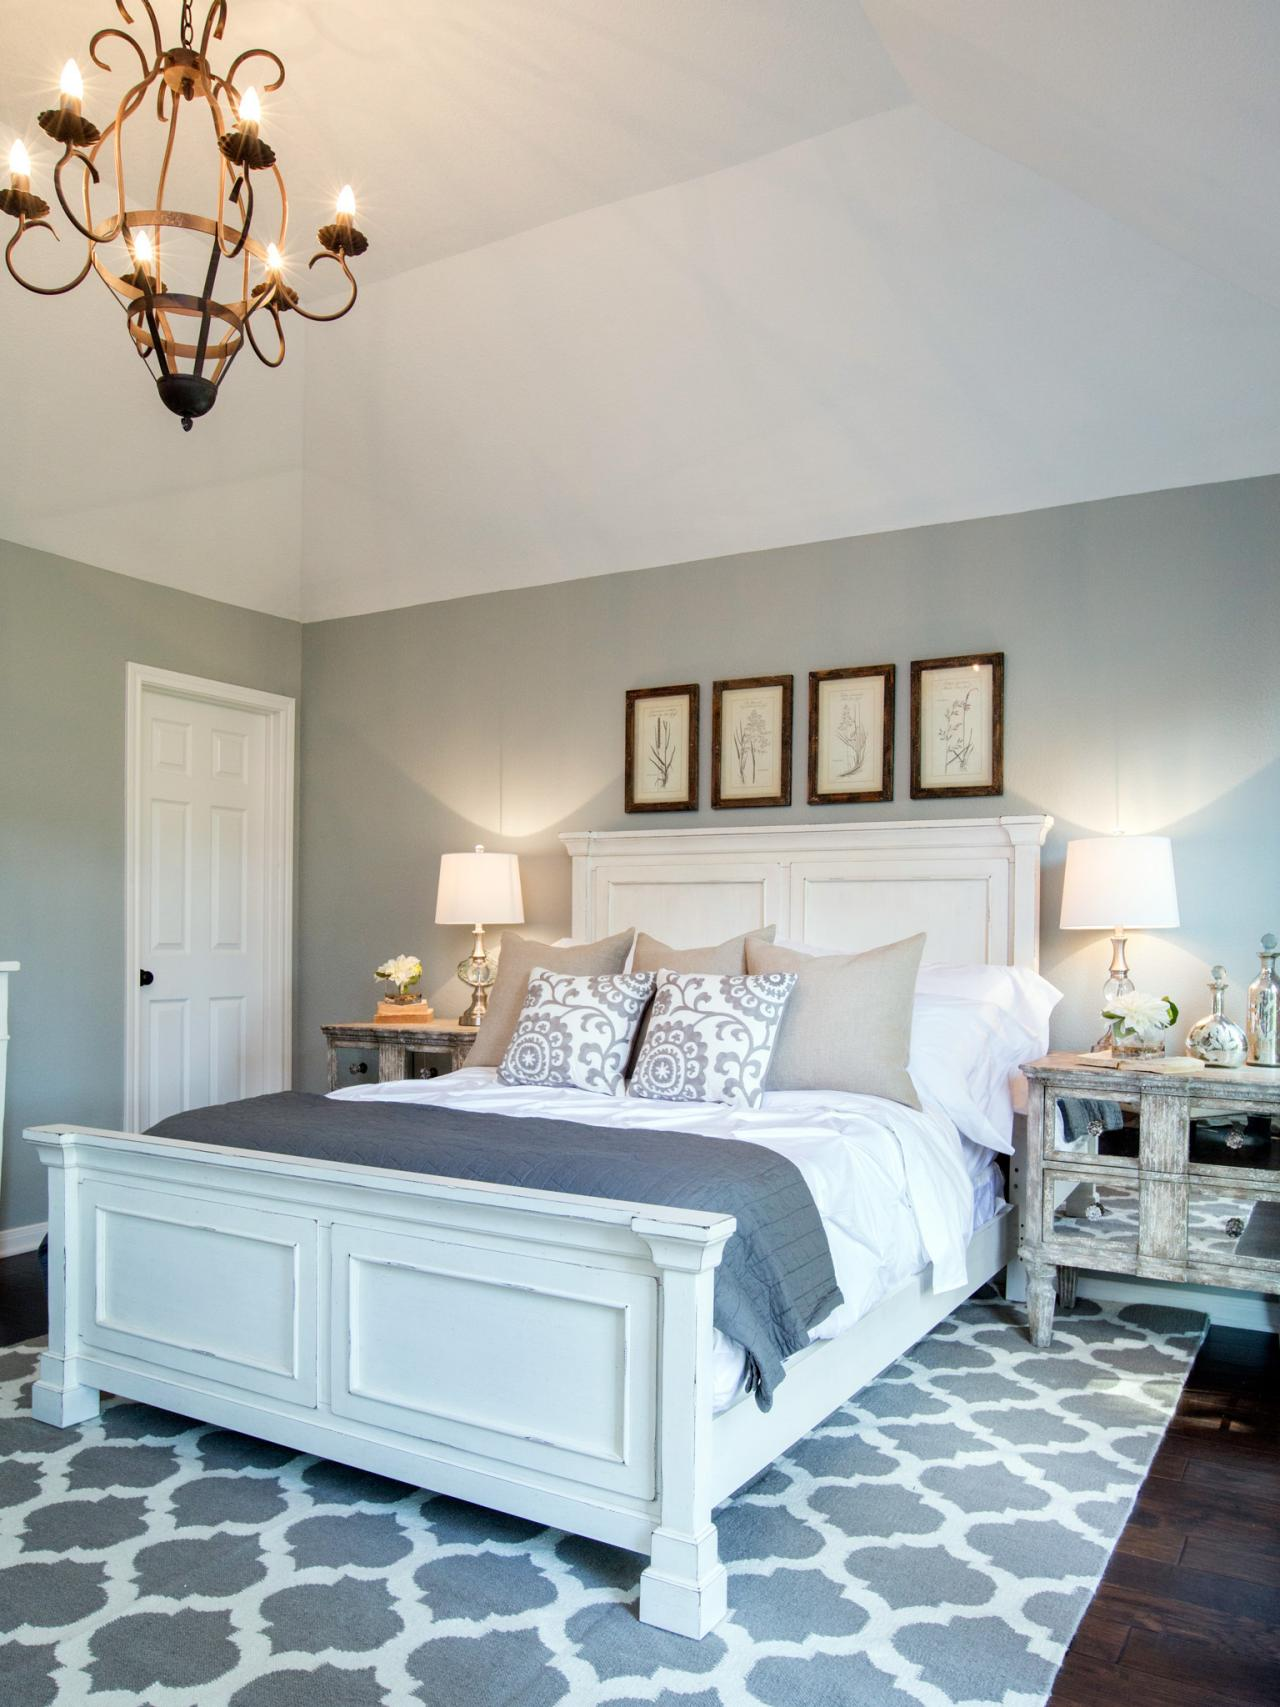 Photos joanna gaines hgtv for Joanna gaines bedroom ideas